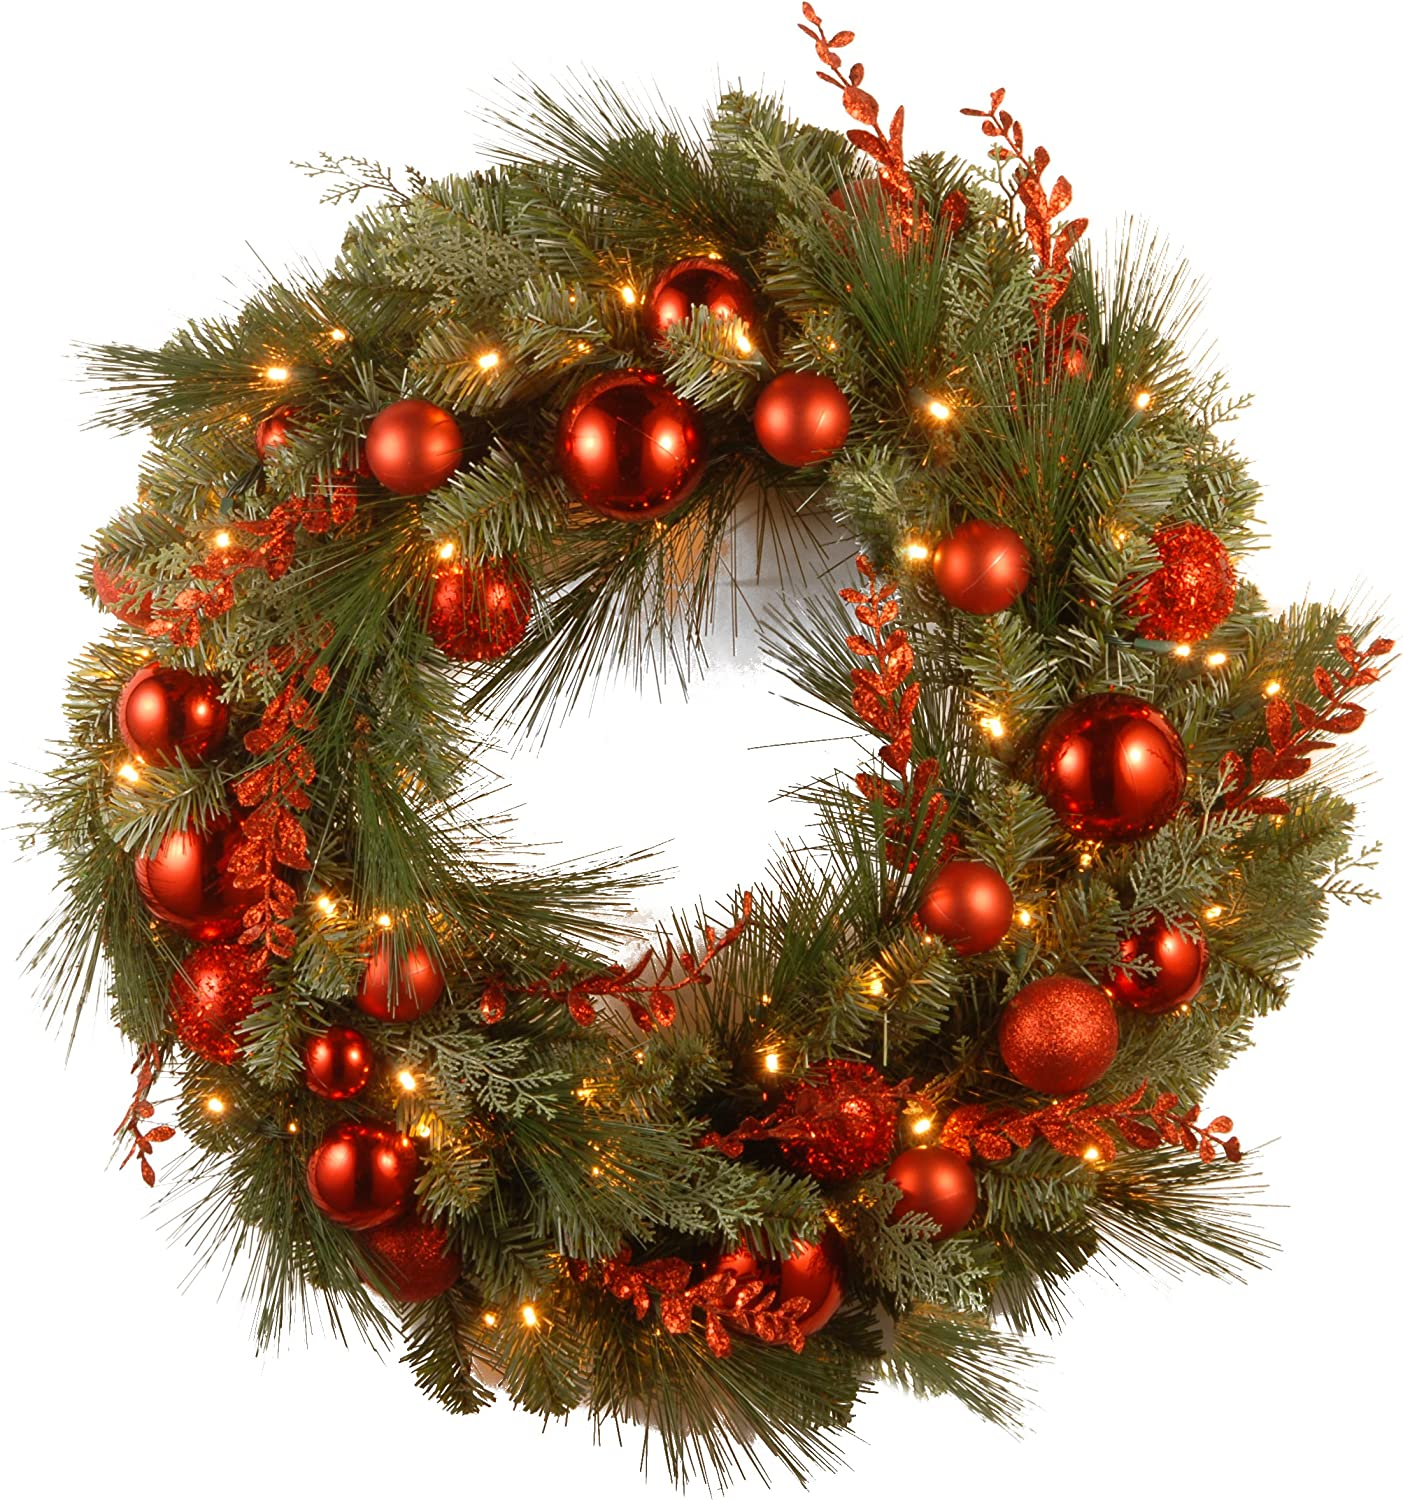 National Tree Company Pre-lit Artificial Christmas Wreath Decorative Collection | Flocked with Mixed Decorations and Pre-strung LED Lights | Red Mixed - 24 Inch